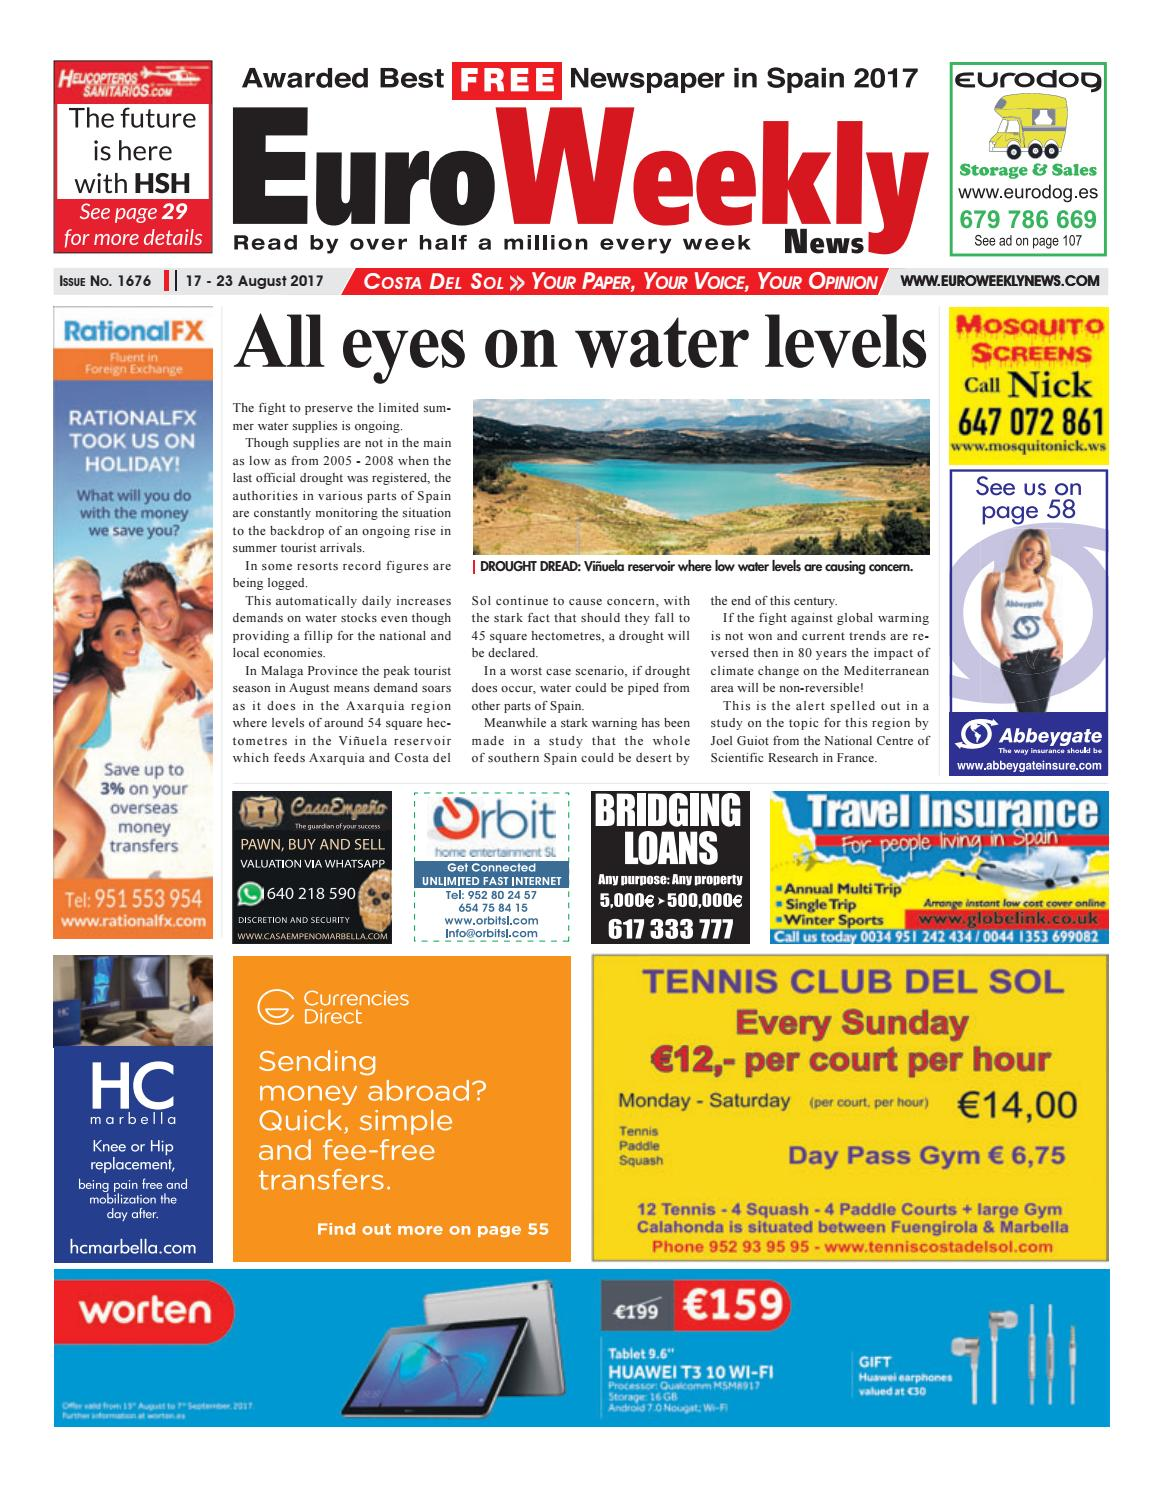 Euro Weekly News - Costa del Sol 17 – 23 August 2017 Issue